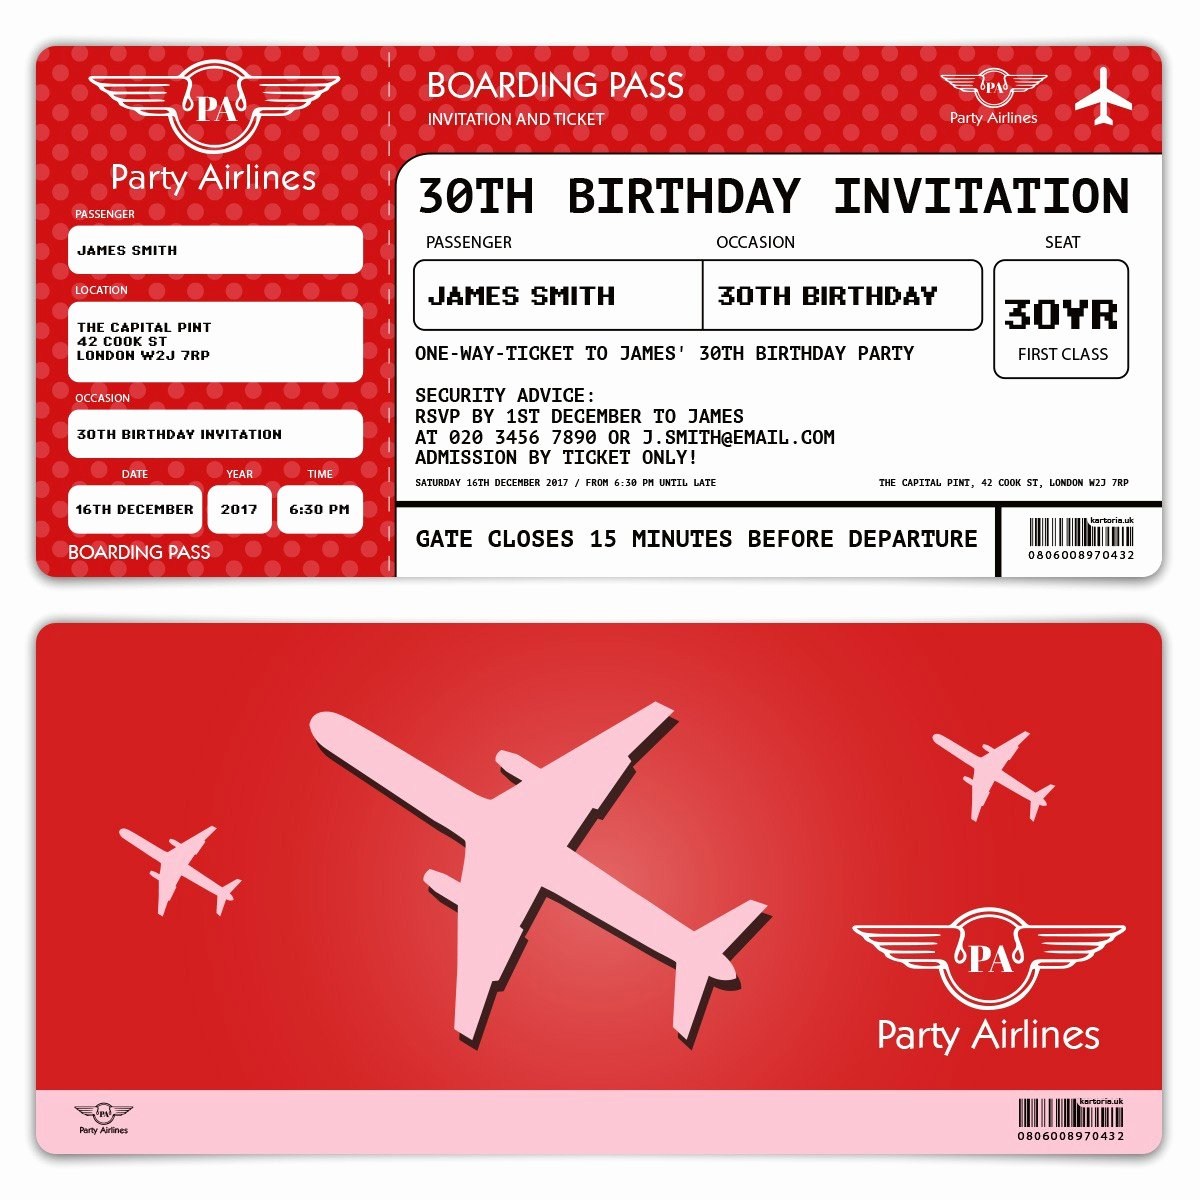 Boarding Pass Birthday Invitations Elegant Birthday Invitation Ticket Red Boarding Pass